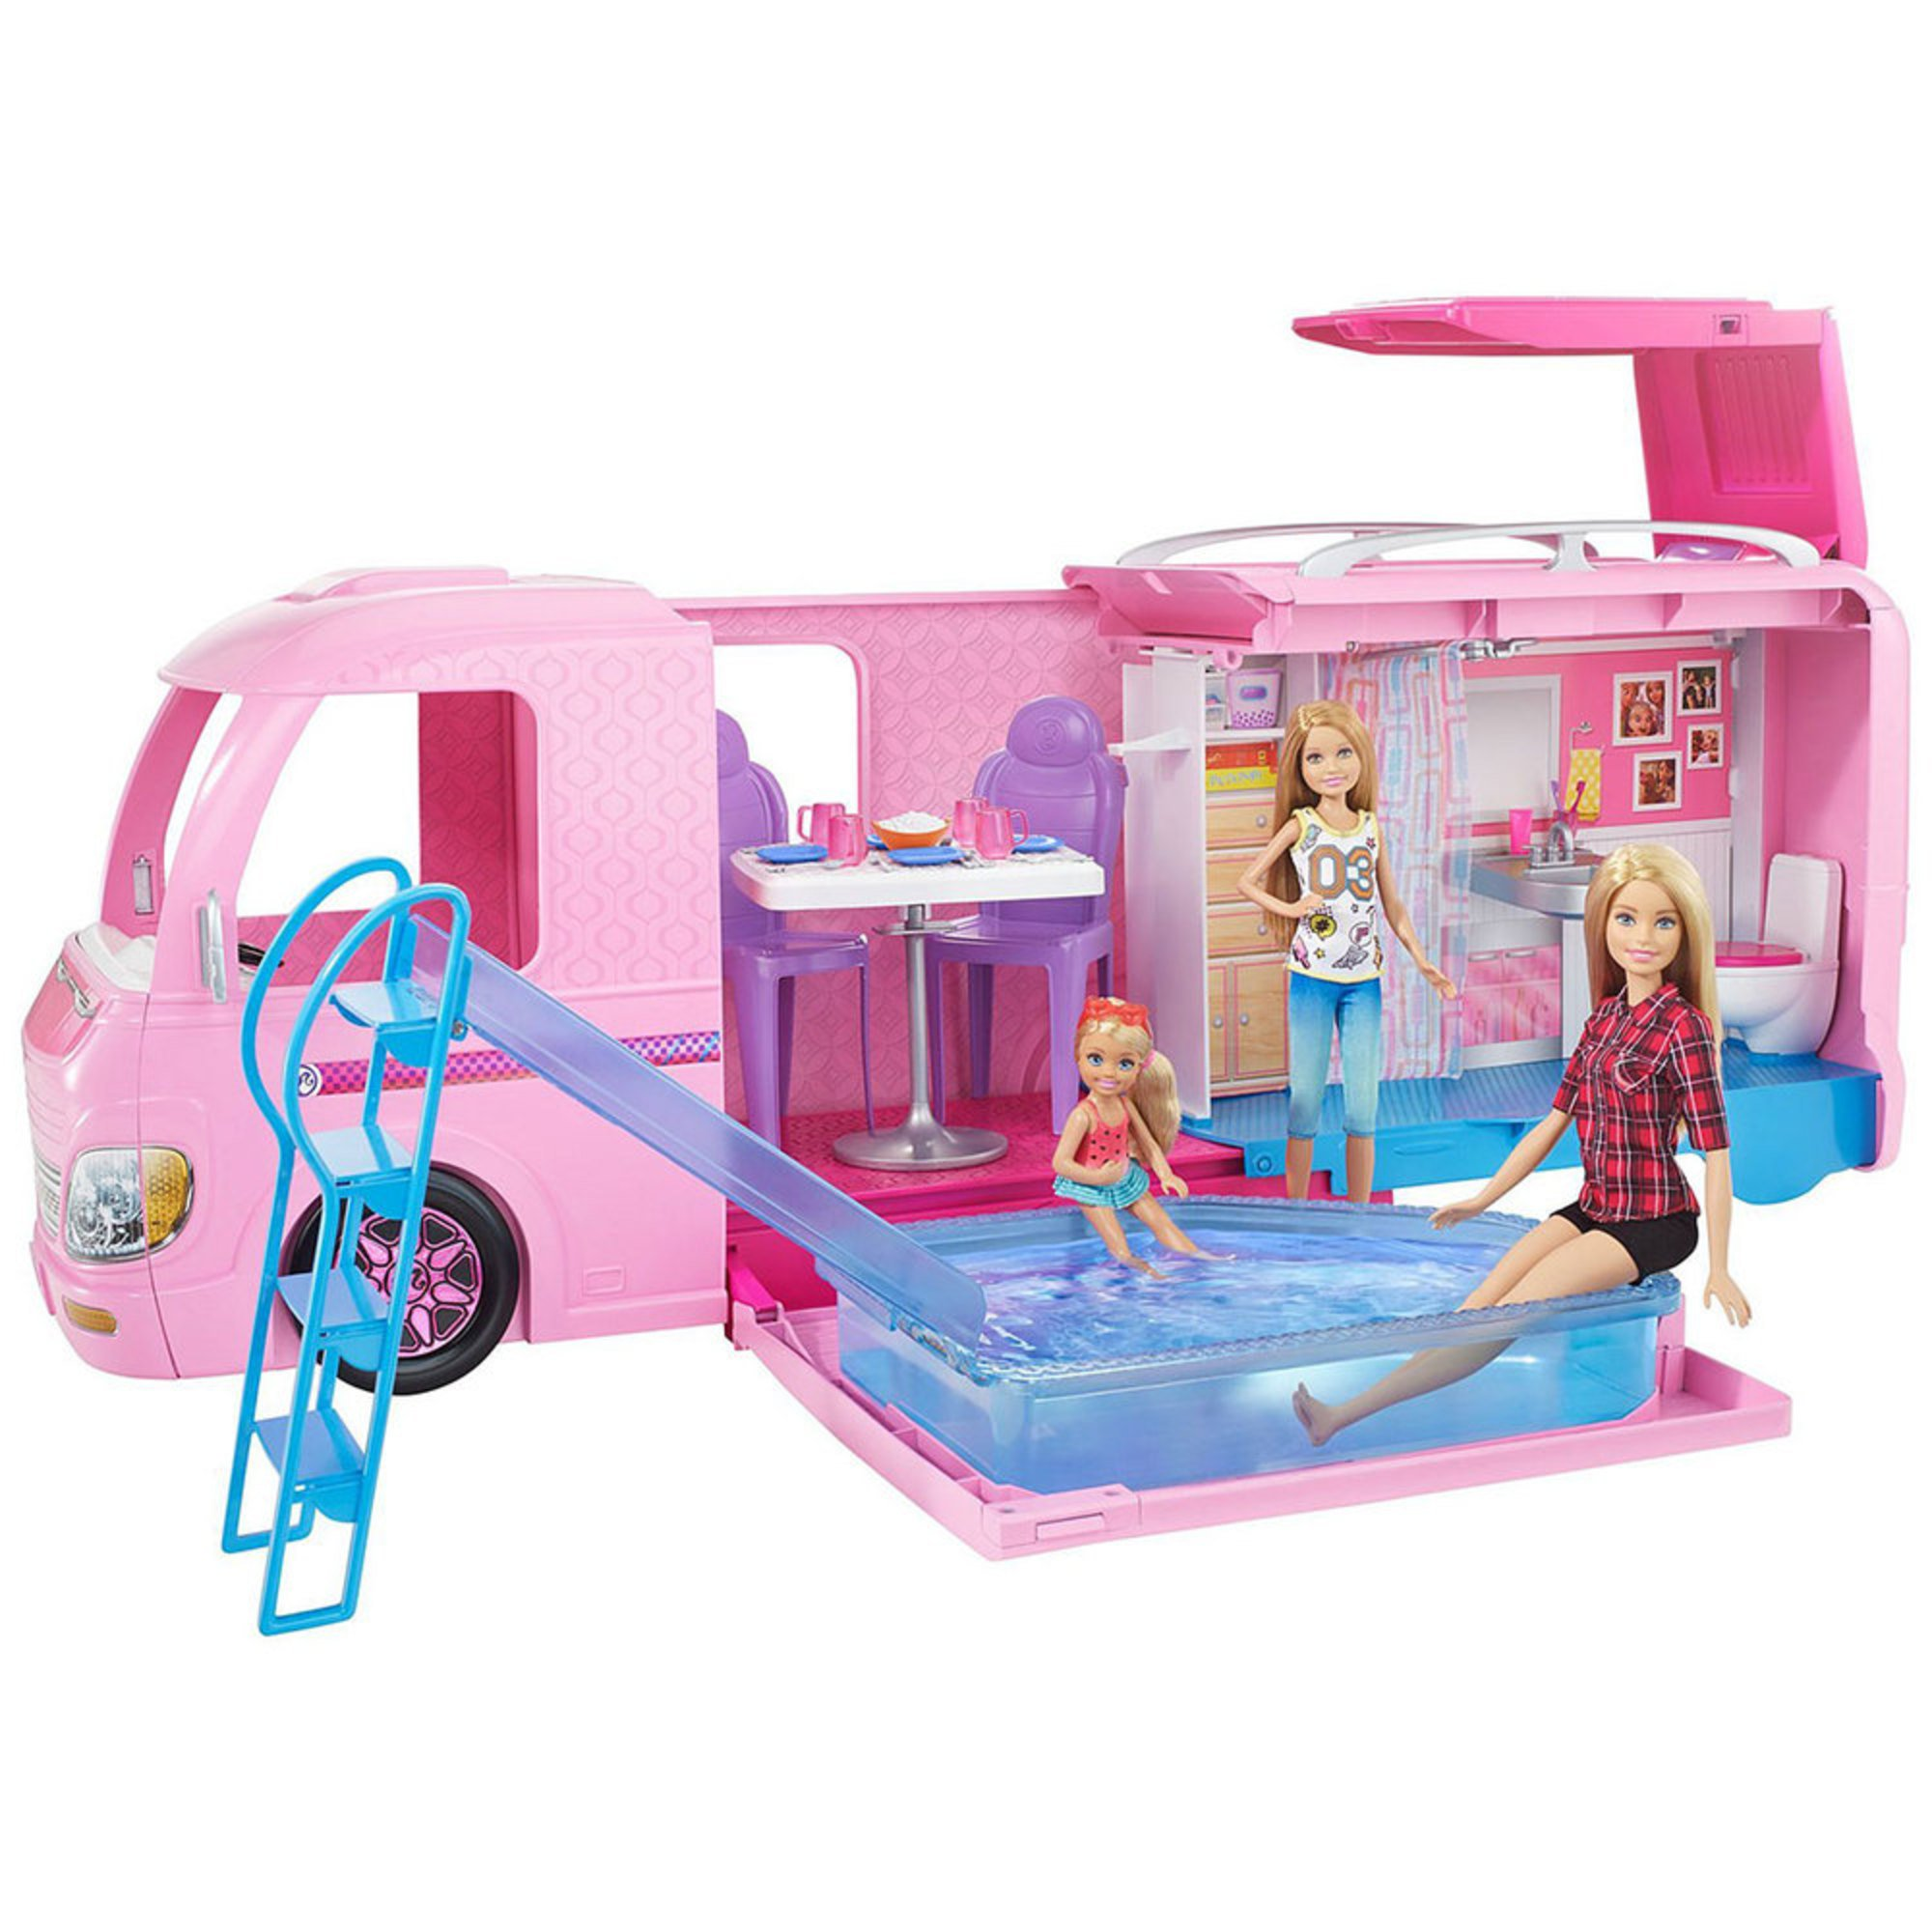 Mattel. Barbie Dream Camper